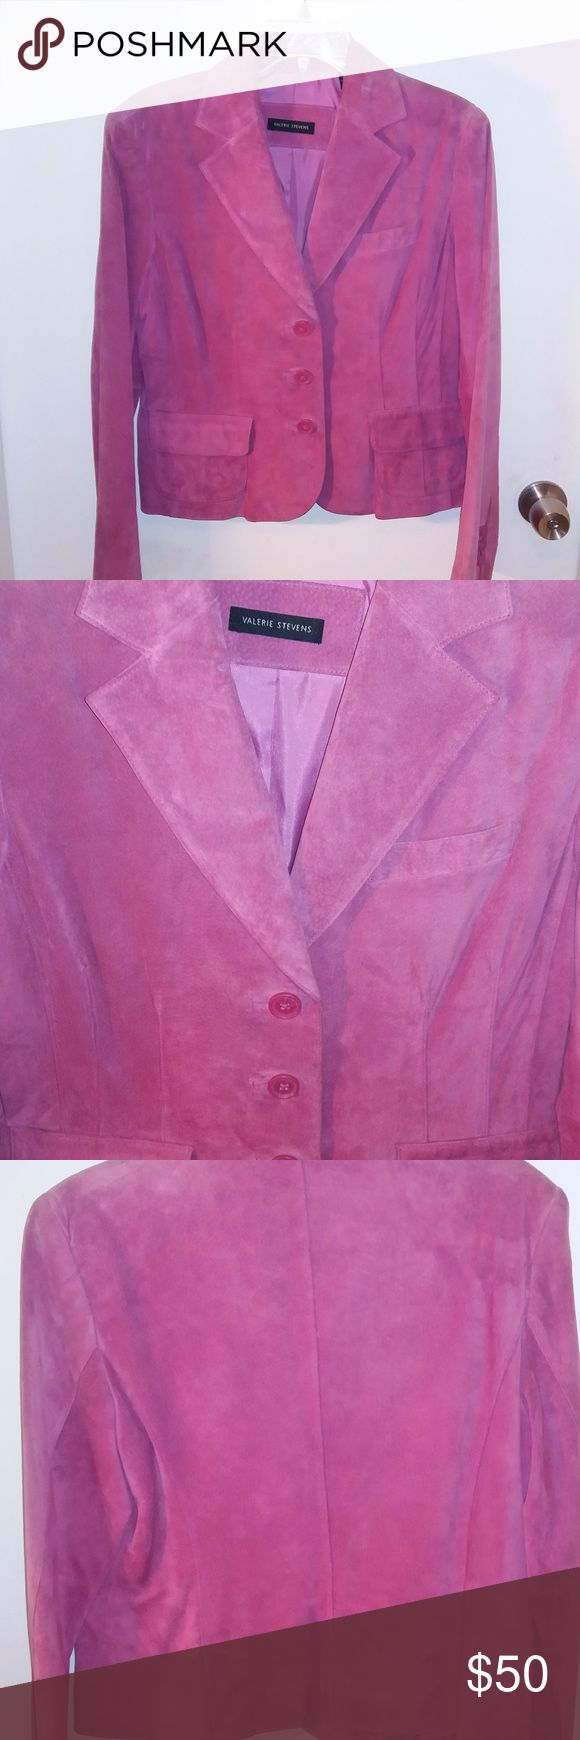 EUC Pink Suede Blazer Sz Medium Pink Suede blazer.  In great shape.  There is some smoothing on the arms of the suede, but it only noticeable through touch. Valerie Stevens Jackets & Coats Blazers